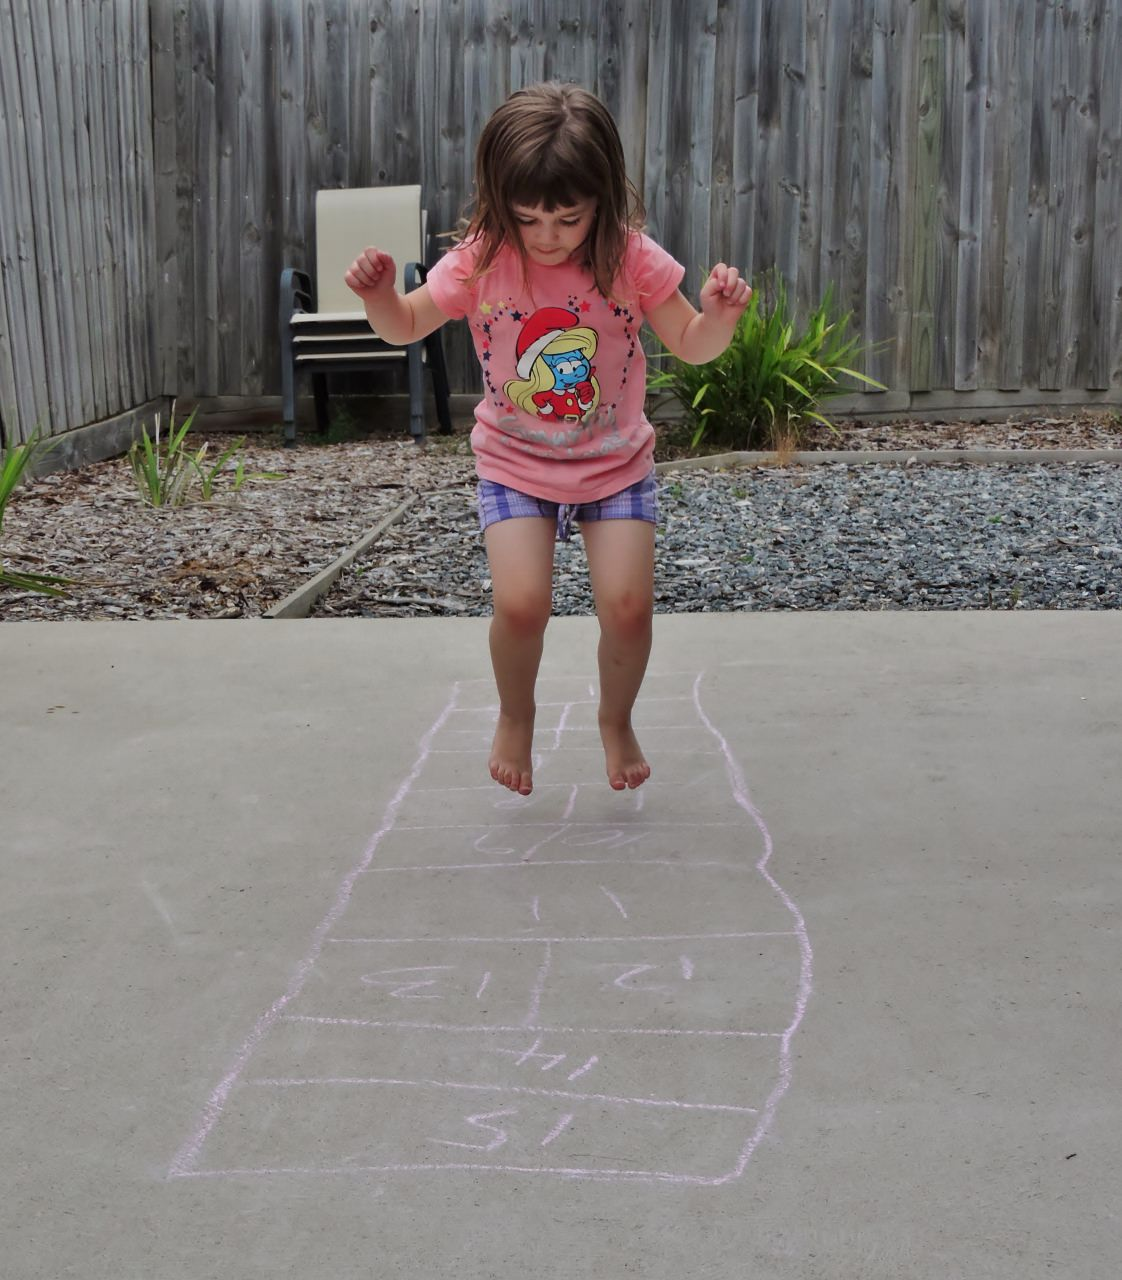 Karla playing hopscotch